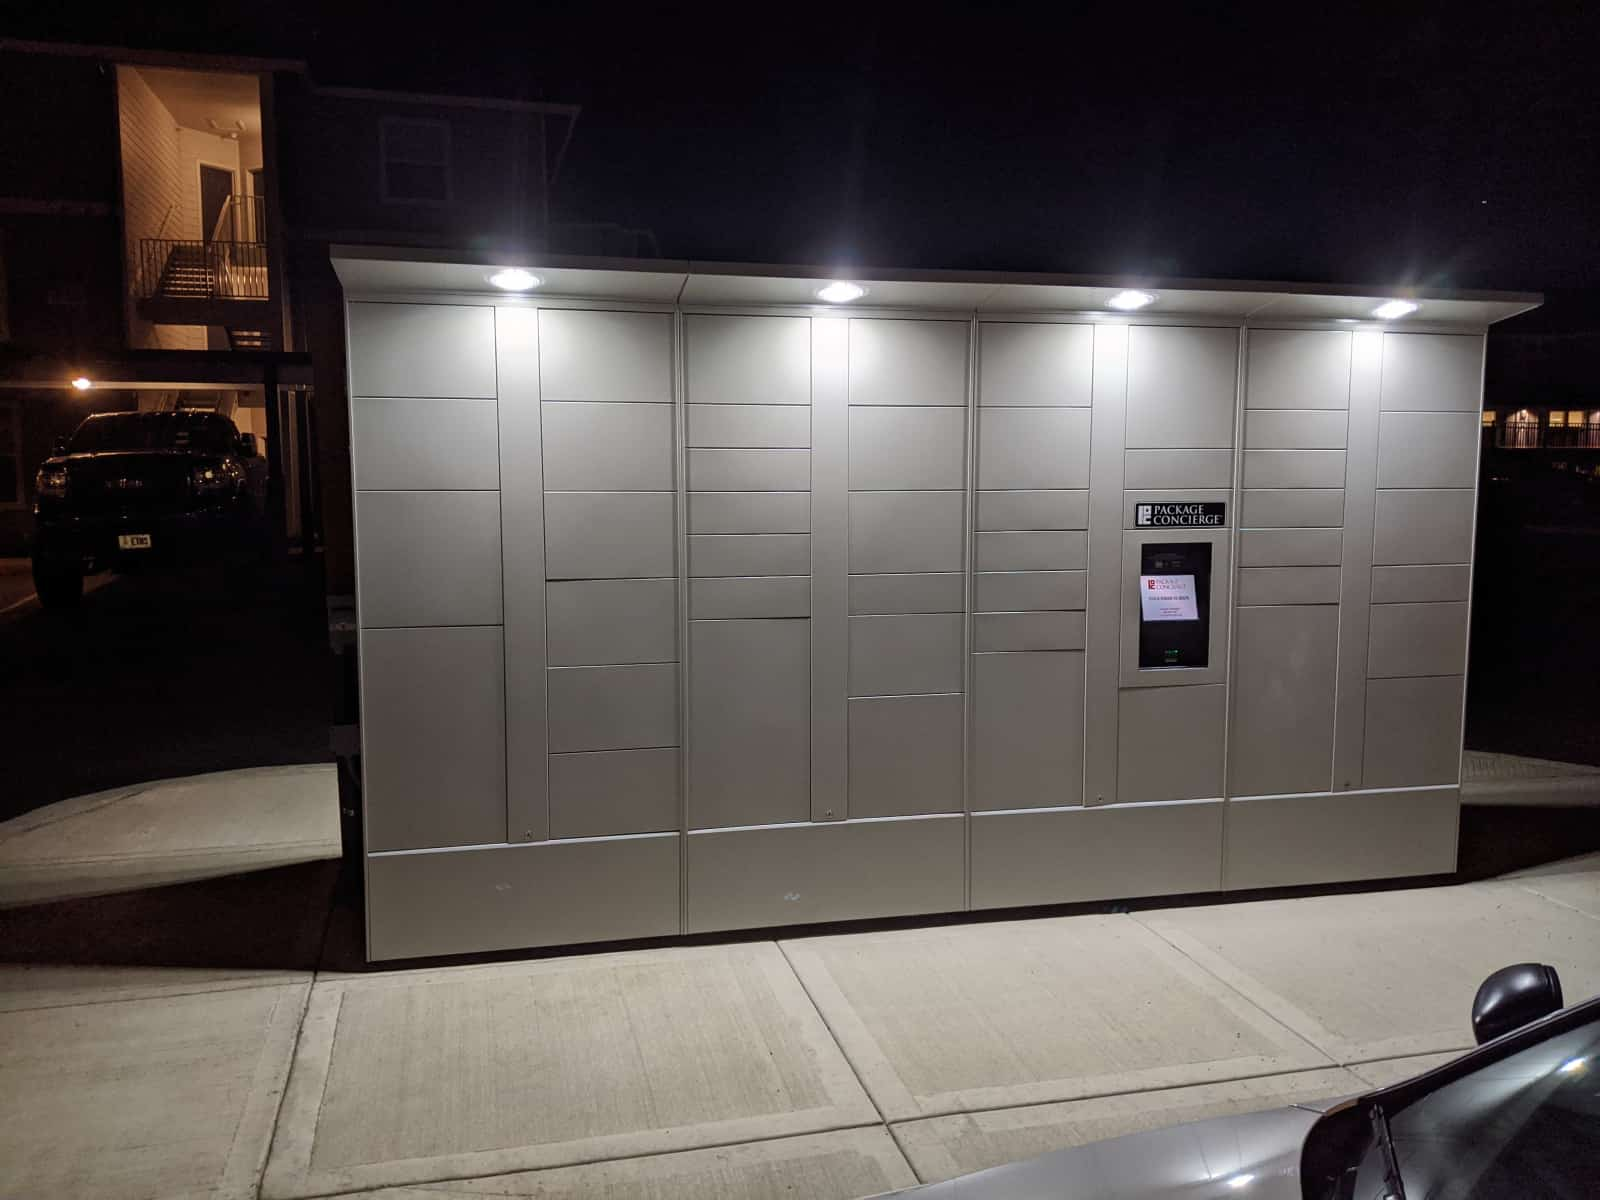 Outdoor Package Locker at Night with LED Light Awning